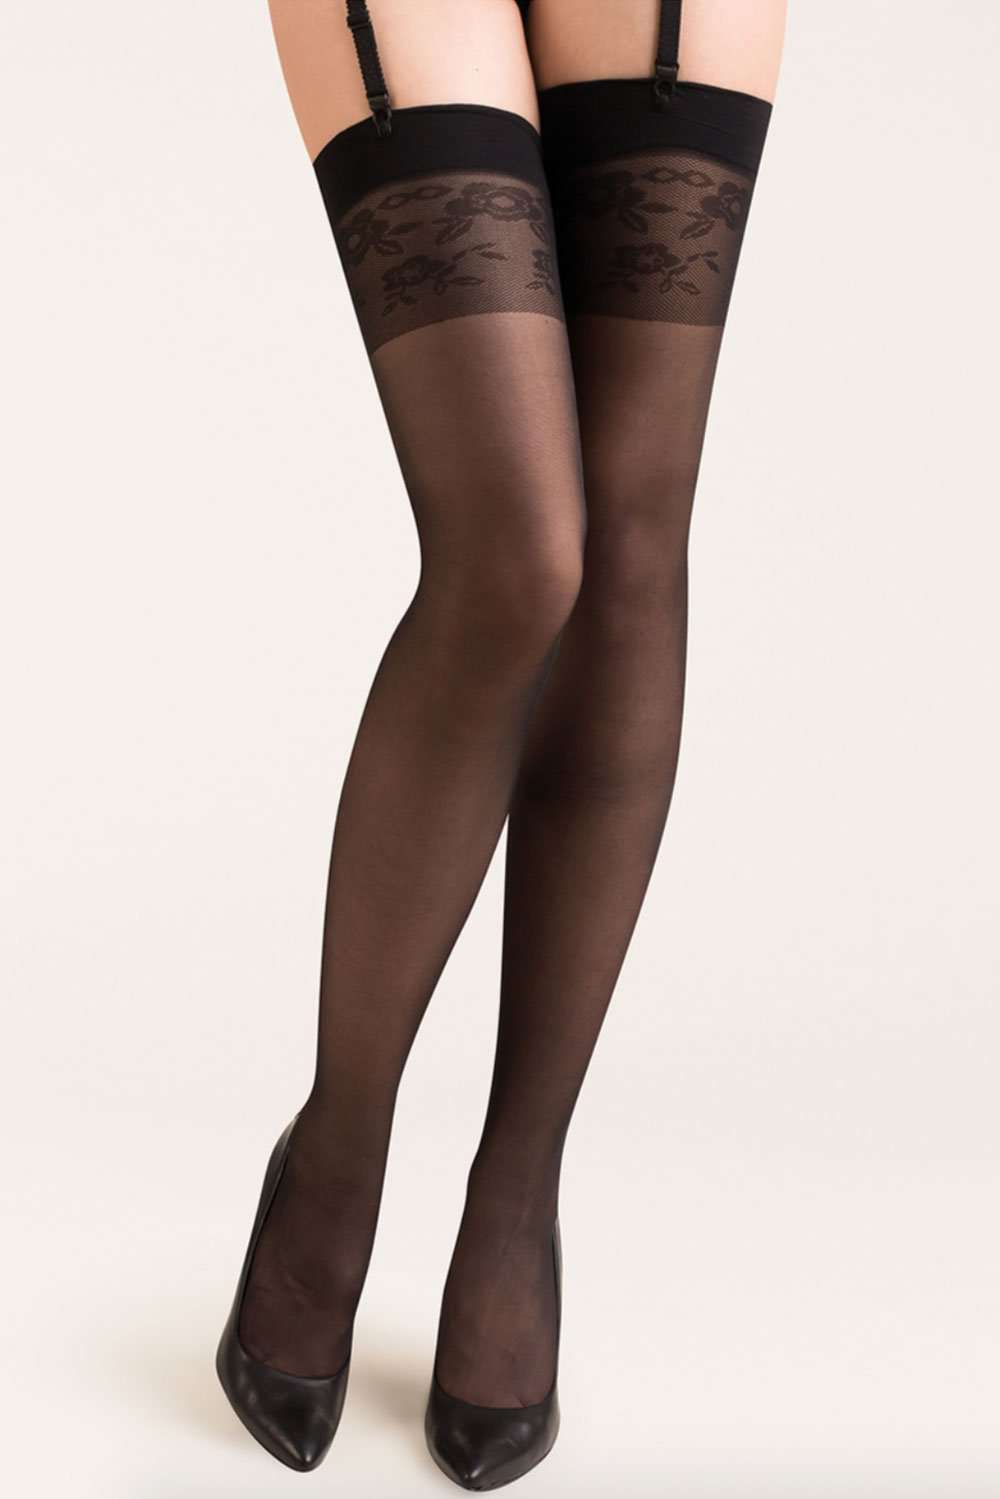 3ab24ab2cf2 Gabriella Sheer Stockings - Garter Belt Stockings - Naughty Knickers